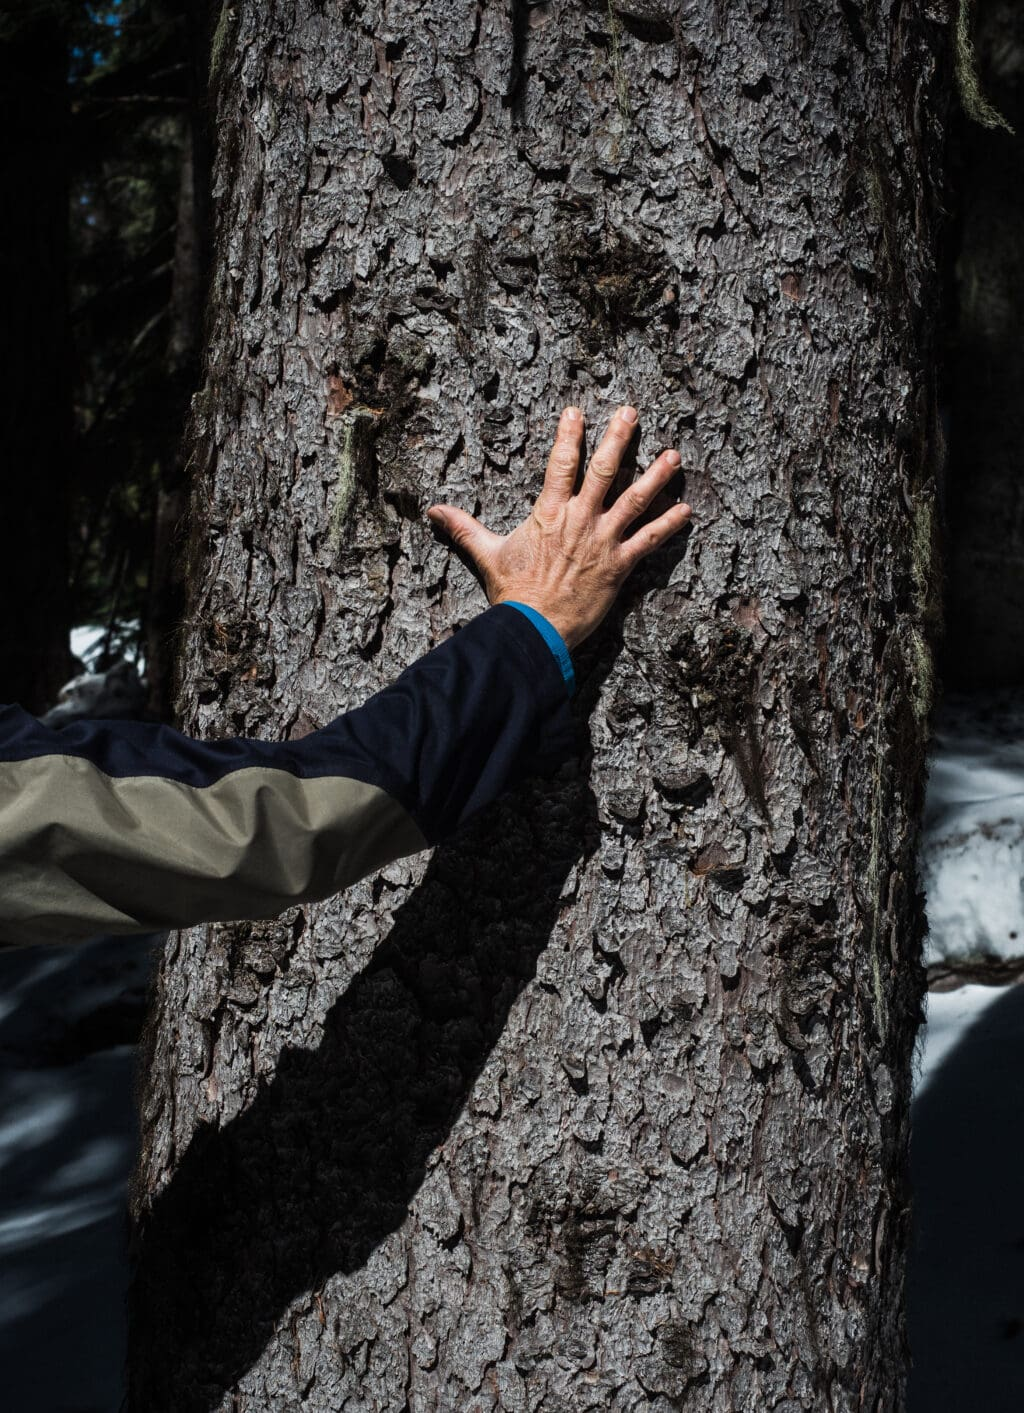 An outstretched arm with an open hand reaches towards the bark of a spruce tree